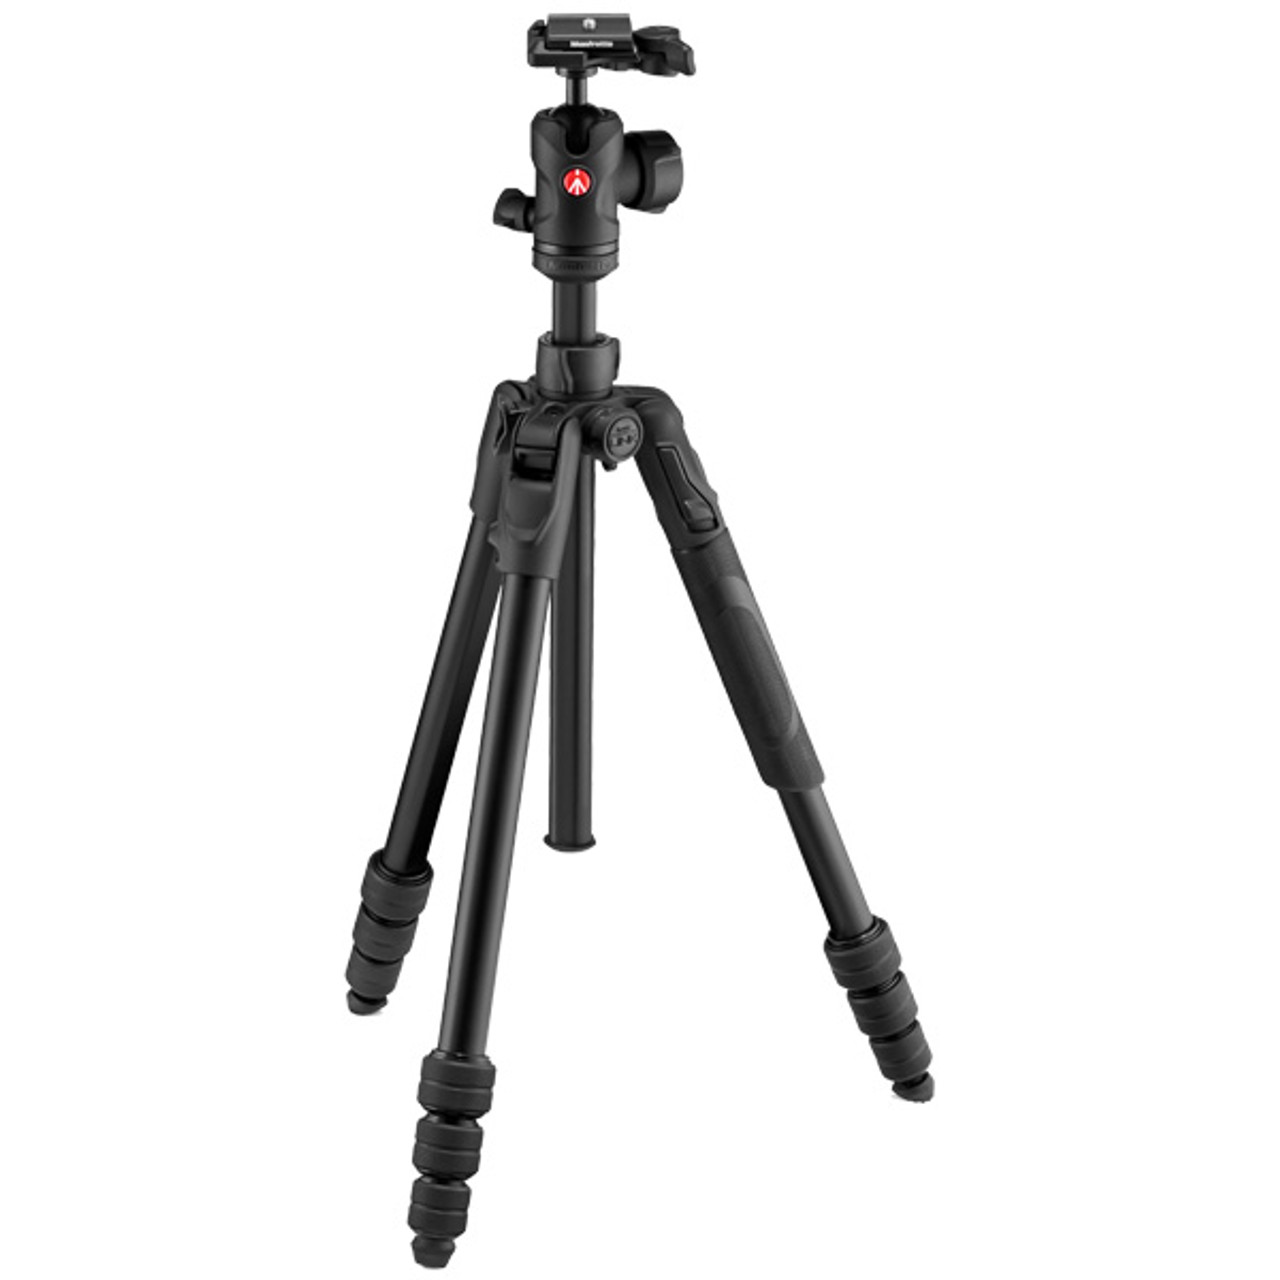 Manfrotto Befree Advanced Nerissimo Travel Tripod